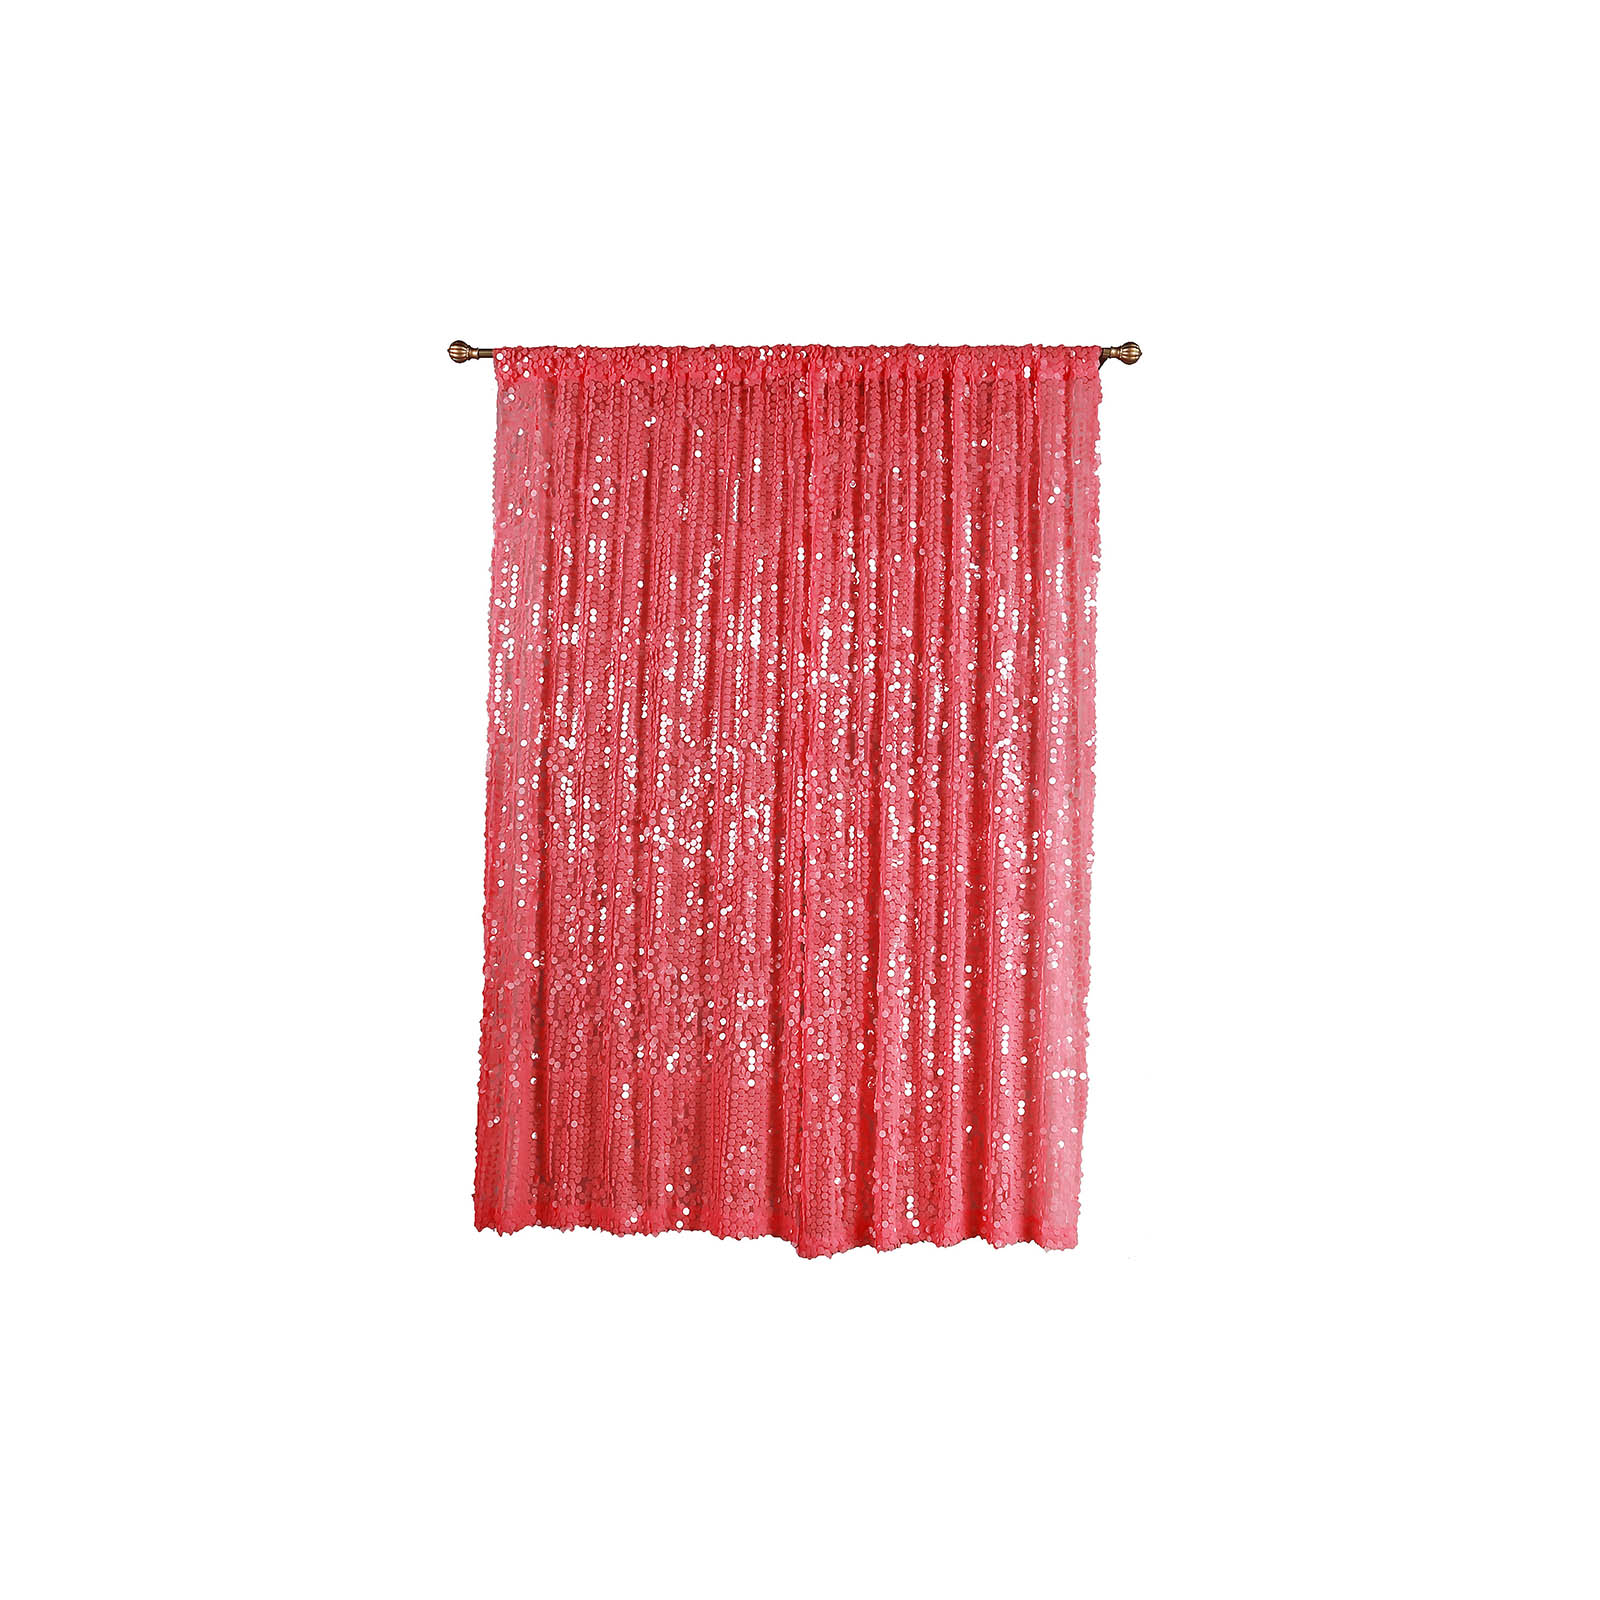 Pink Sequin Curtains Balsacircle 52 X 96 Inch Big Payette Sequin Curtains Drapes Panels Window Treatments Home Decorations